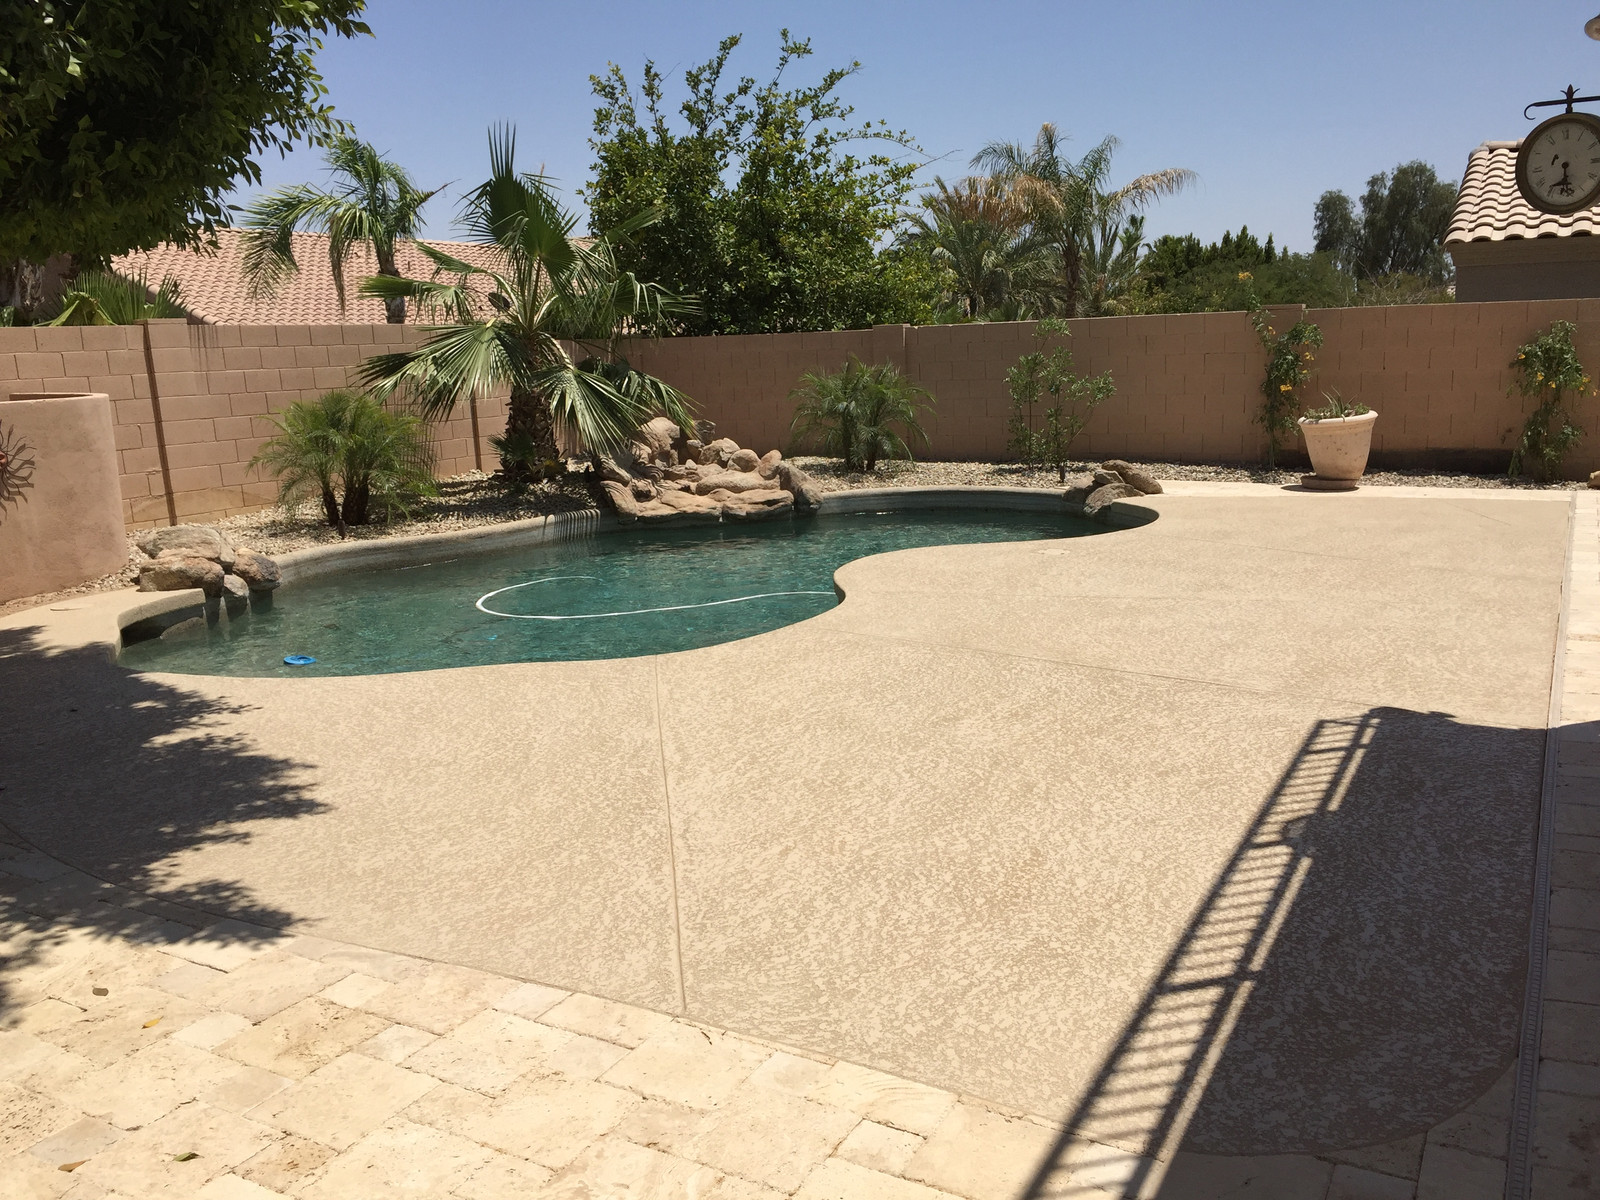 cool deck and travertine with pebble swimming pool | cool deck